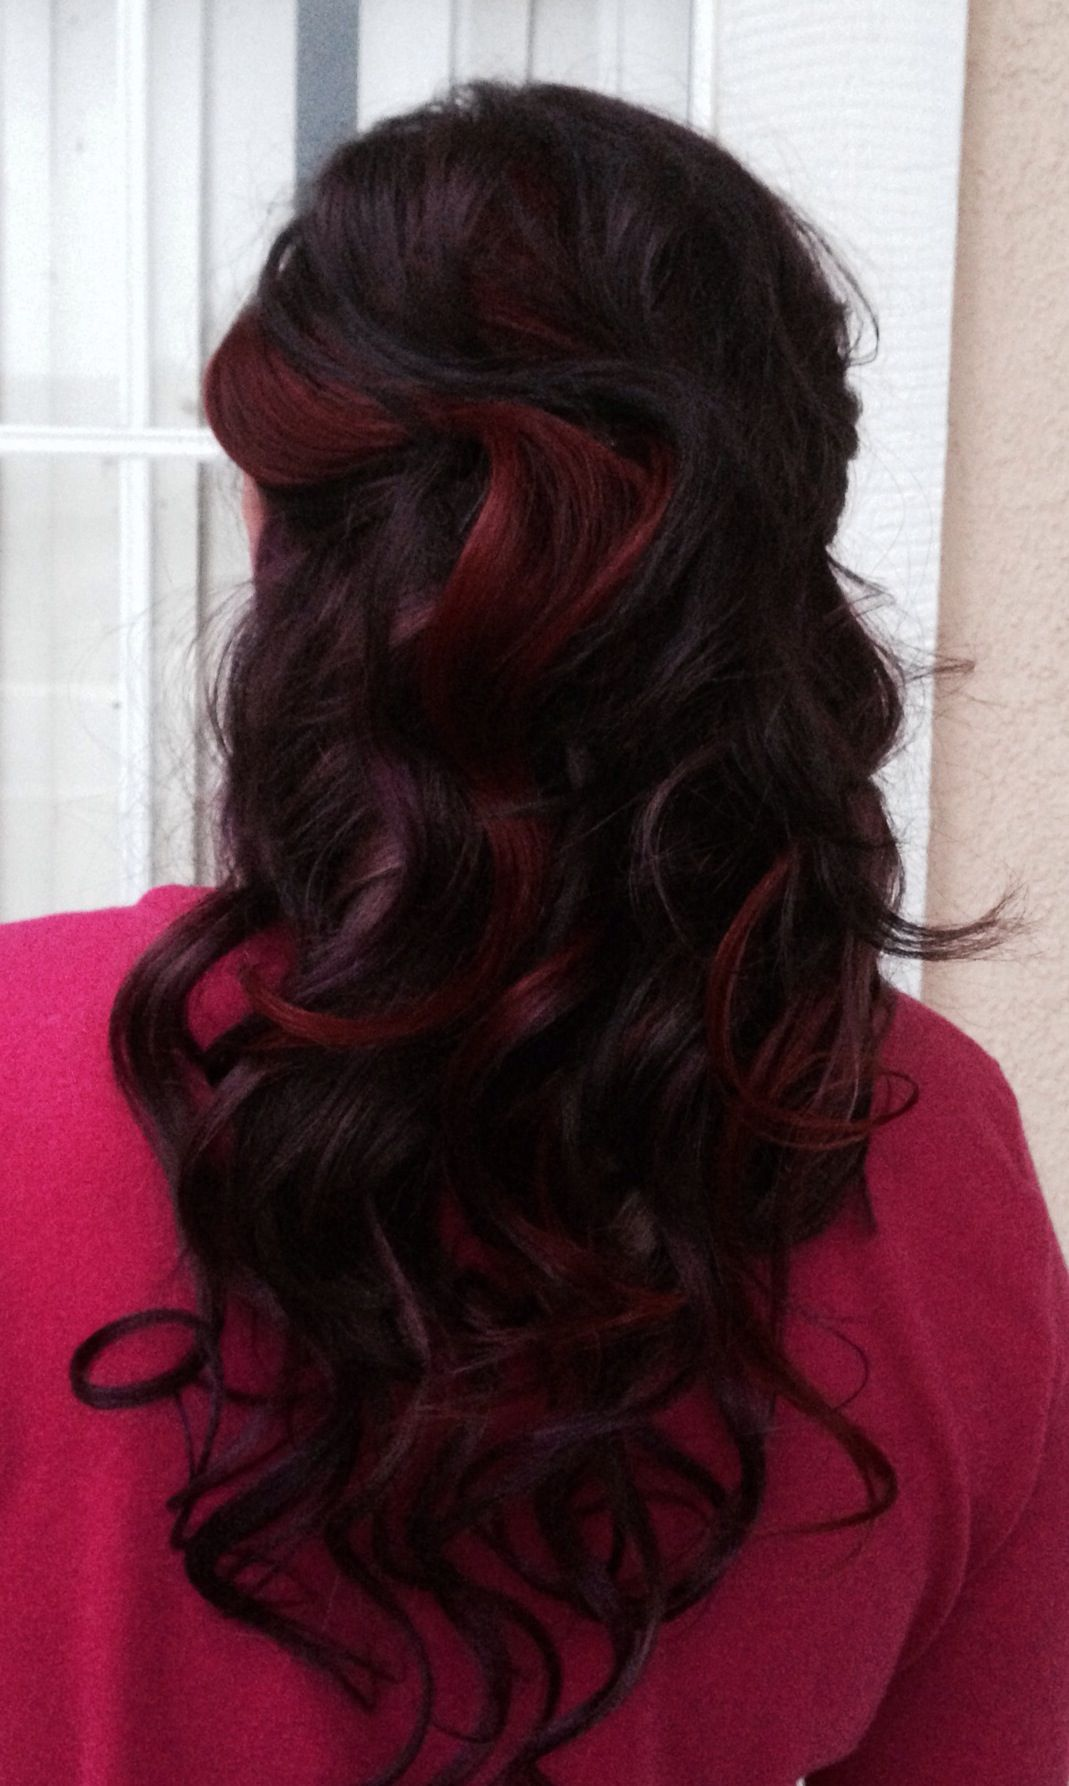 Hair By Carrie Gouvion Matrix Socolor Hd Reds Long Hair Red Plum